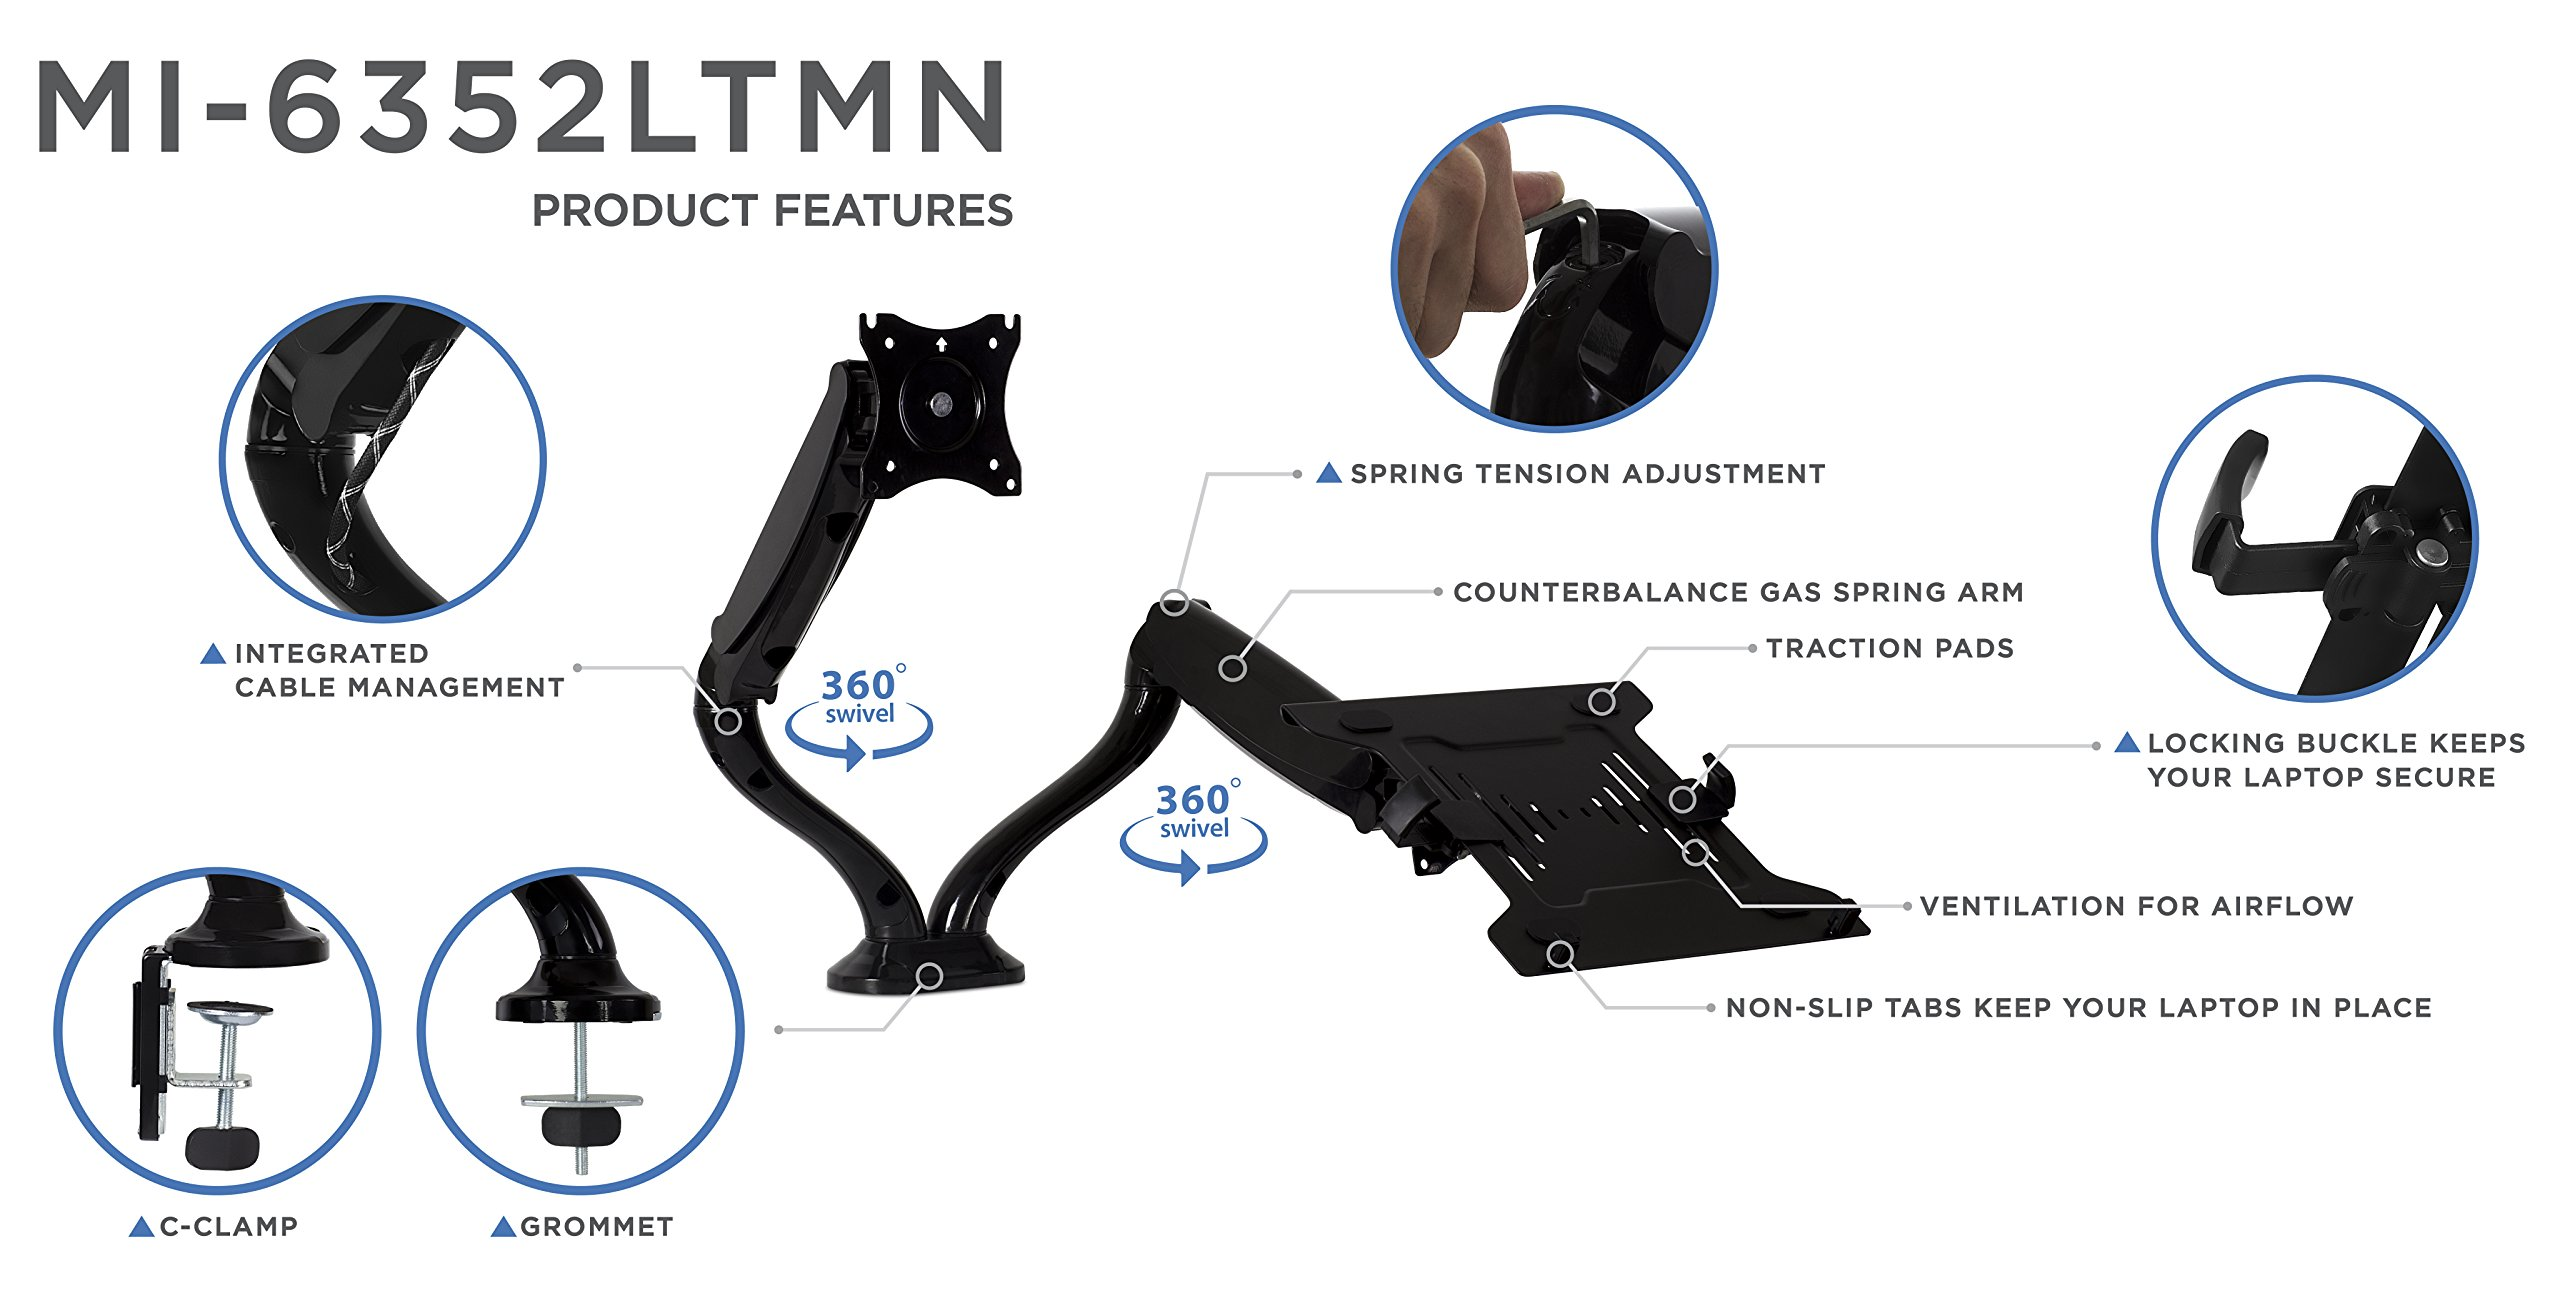 Mount-It! Laptop Desk Stand and Monitor Mount, Full Motion Monitor and Laptop Arm, Fits up to 15.6 Inch Notebooks, VESA 75, 100 Compatible with 22, 23, 24, 27, 32 inch Screens, 13.2 Lbs Per Arm by Mount-It! (Image #4)